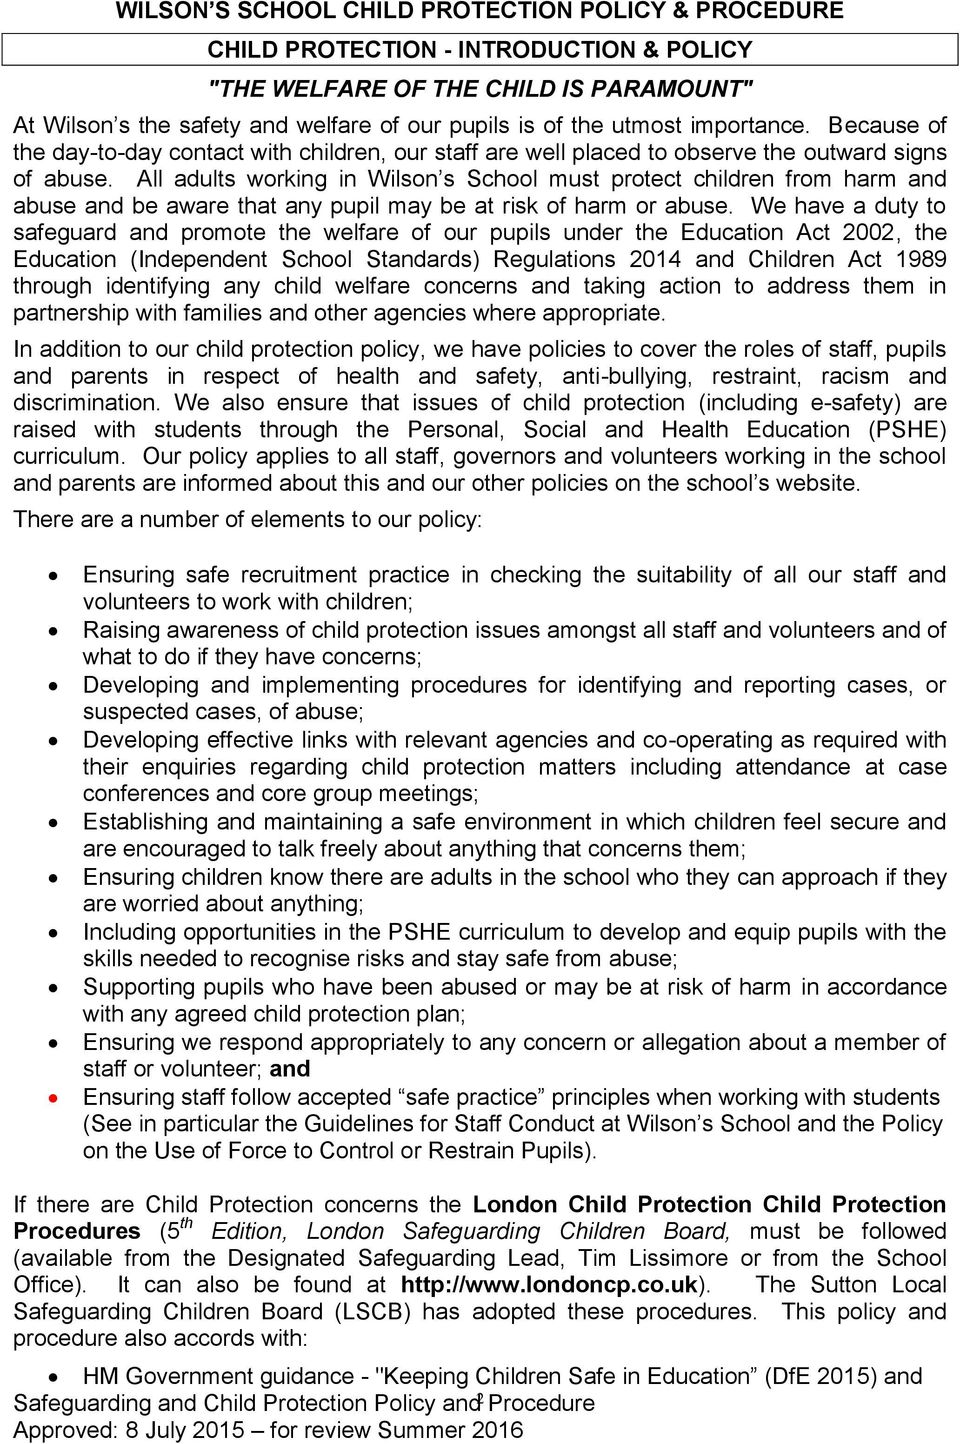 All adults working in Wilson s School must protect children from harm and abuse and be aware that any pupil may be at risk of harm or abuse.